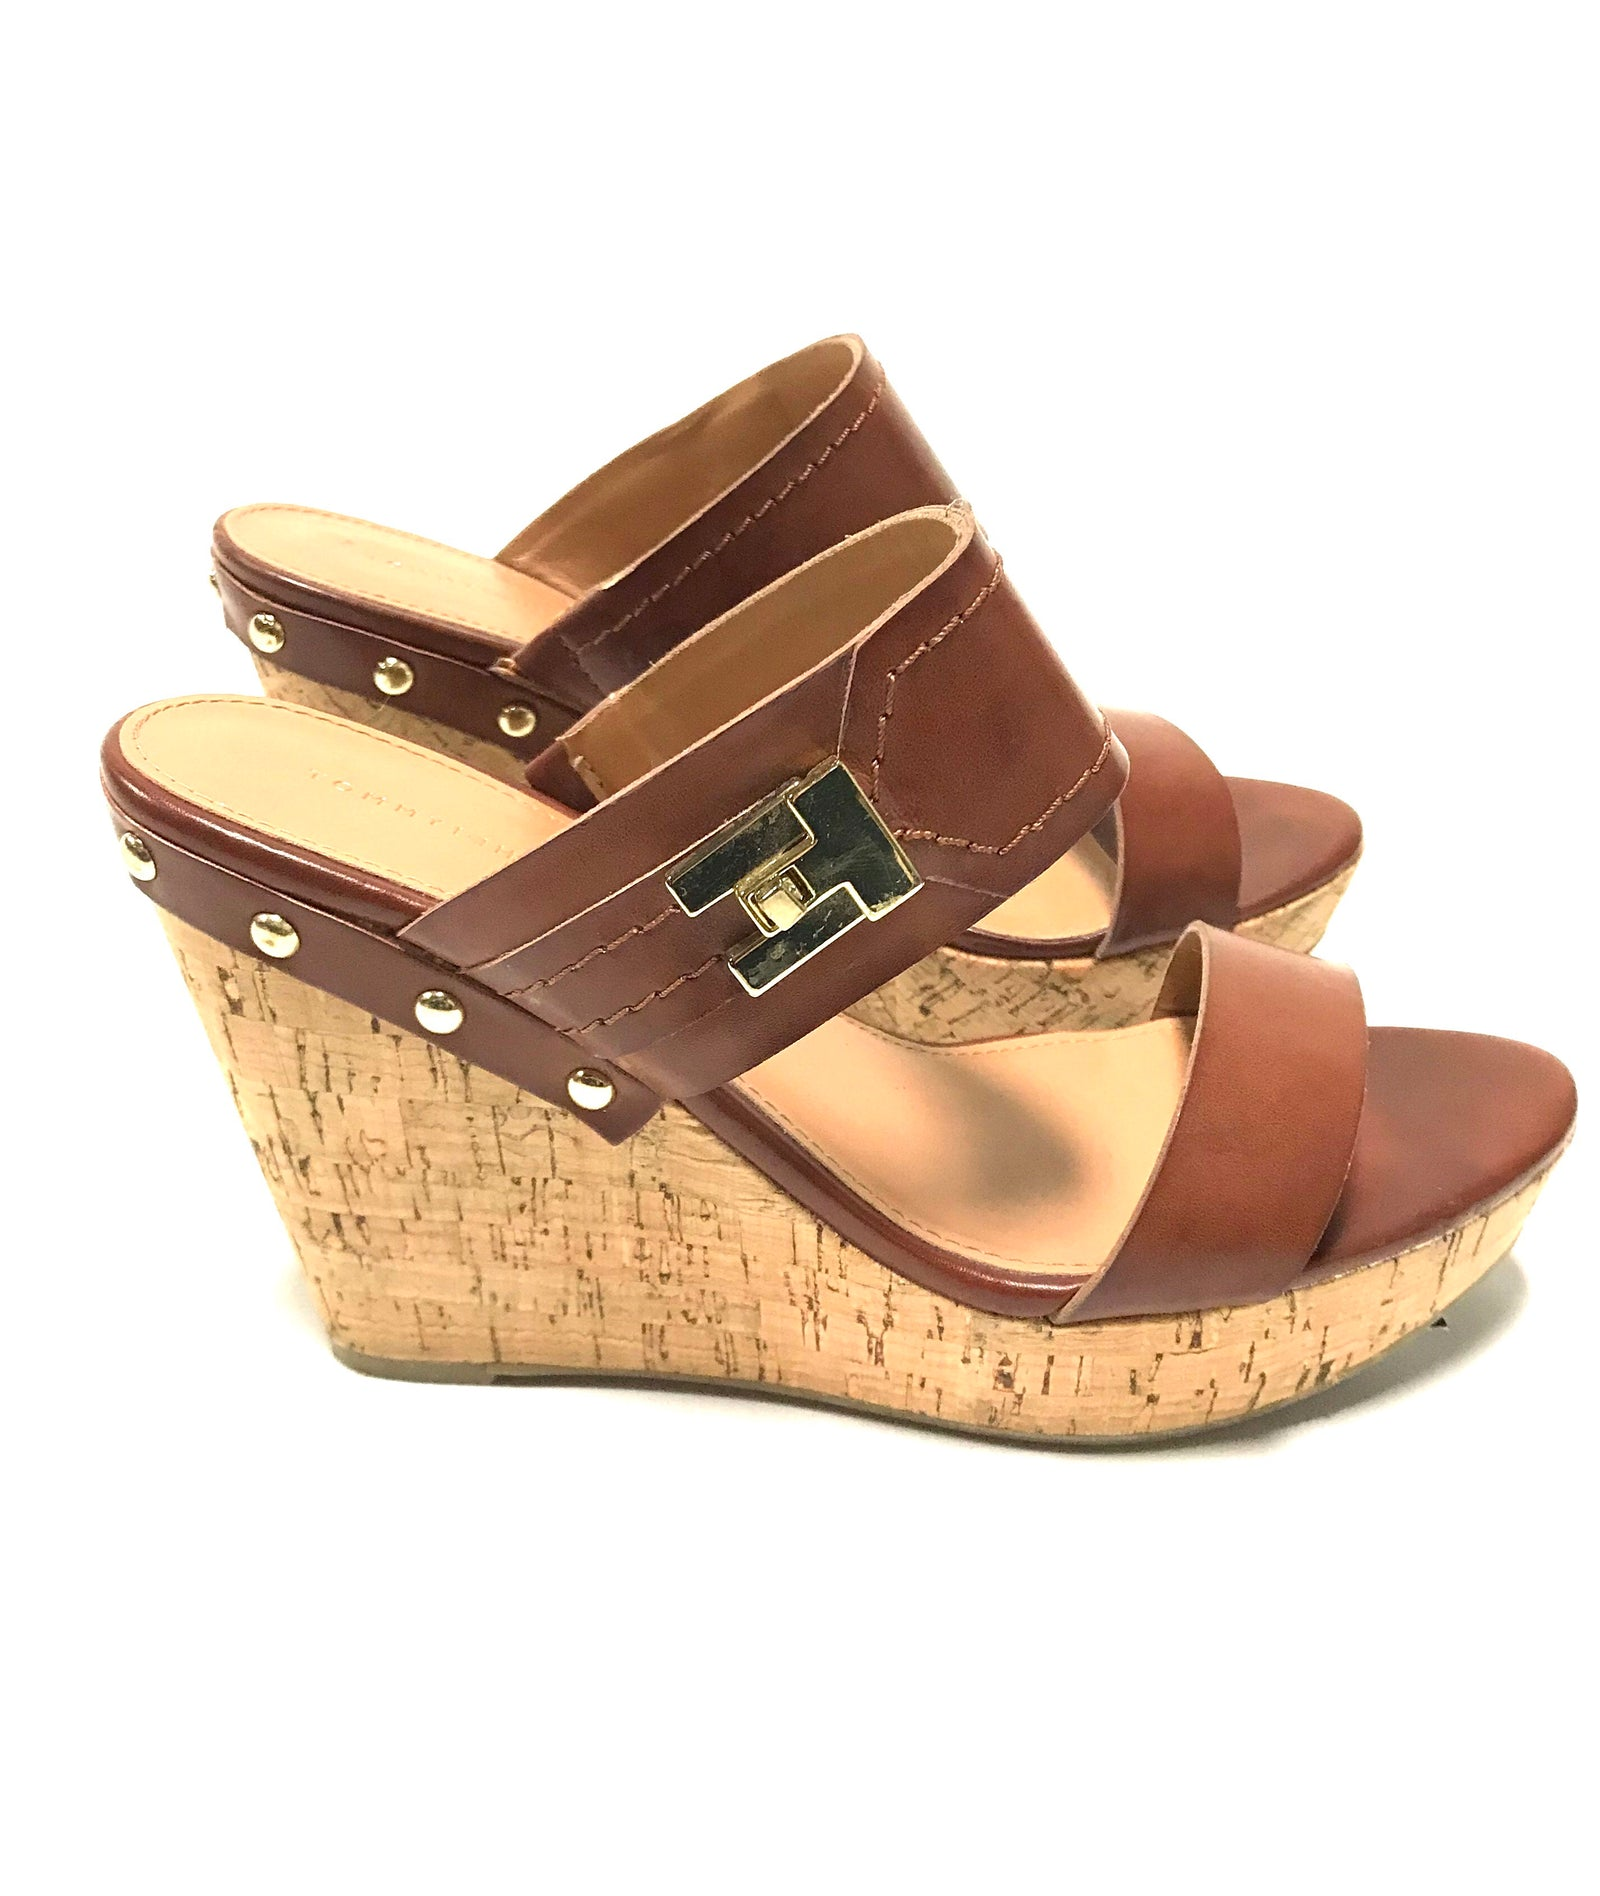 Tommy Hilfiger Wedges (6.5)